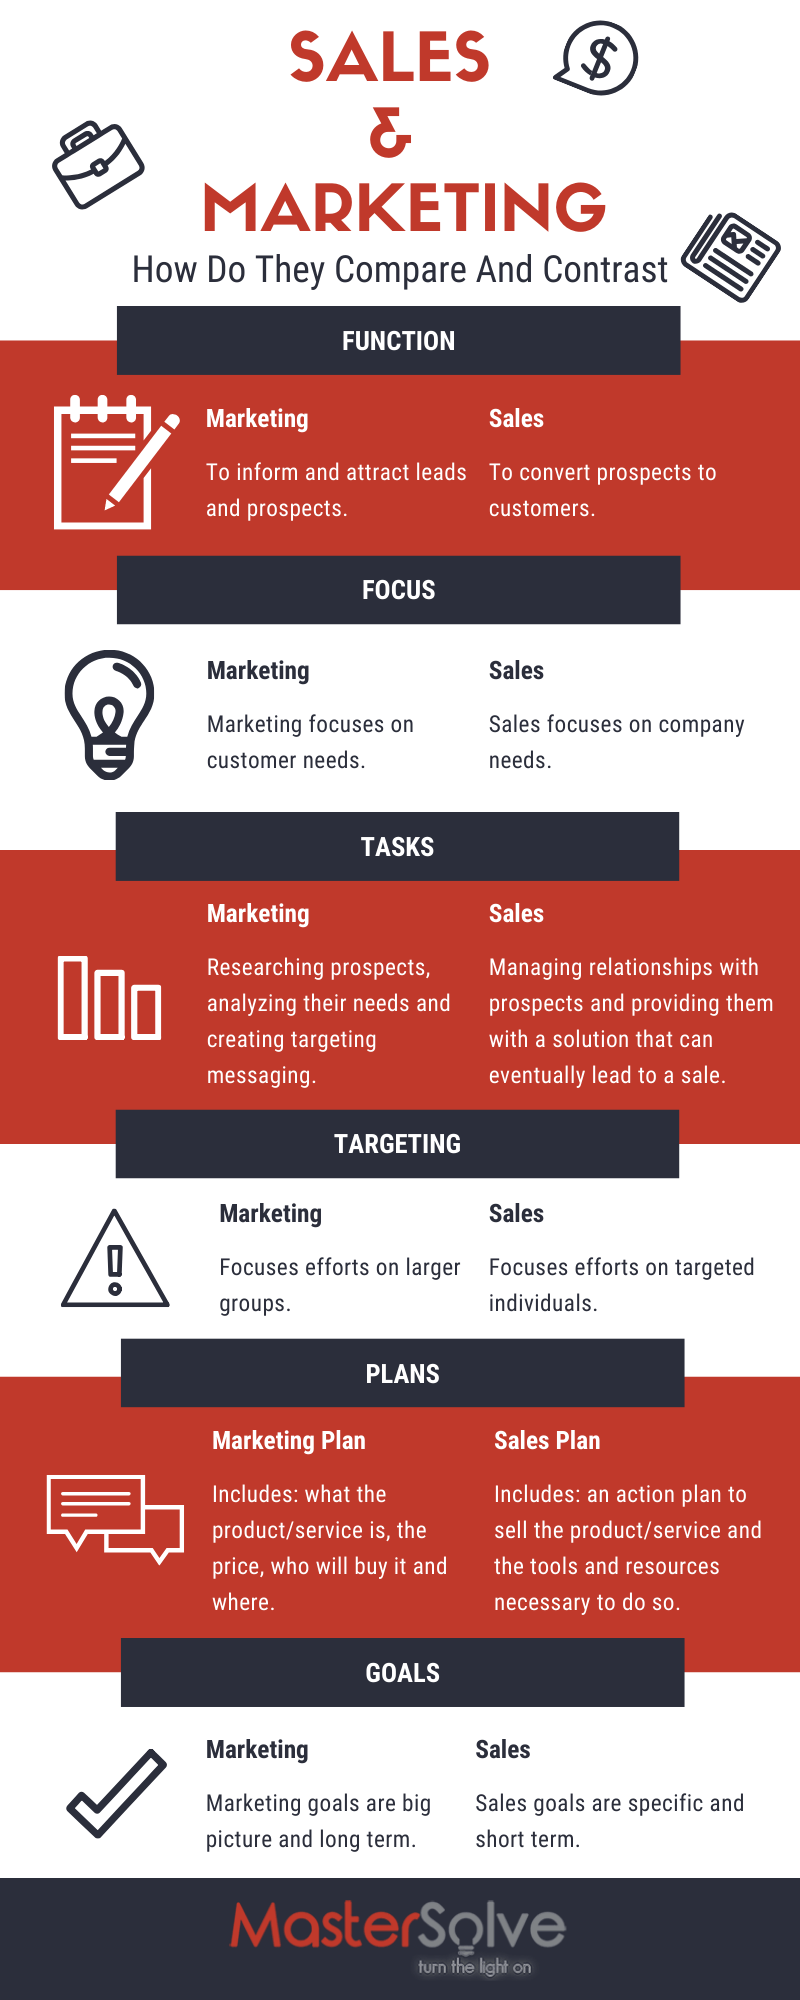 How Do You Compare Sales & Marketing?